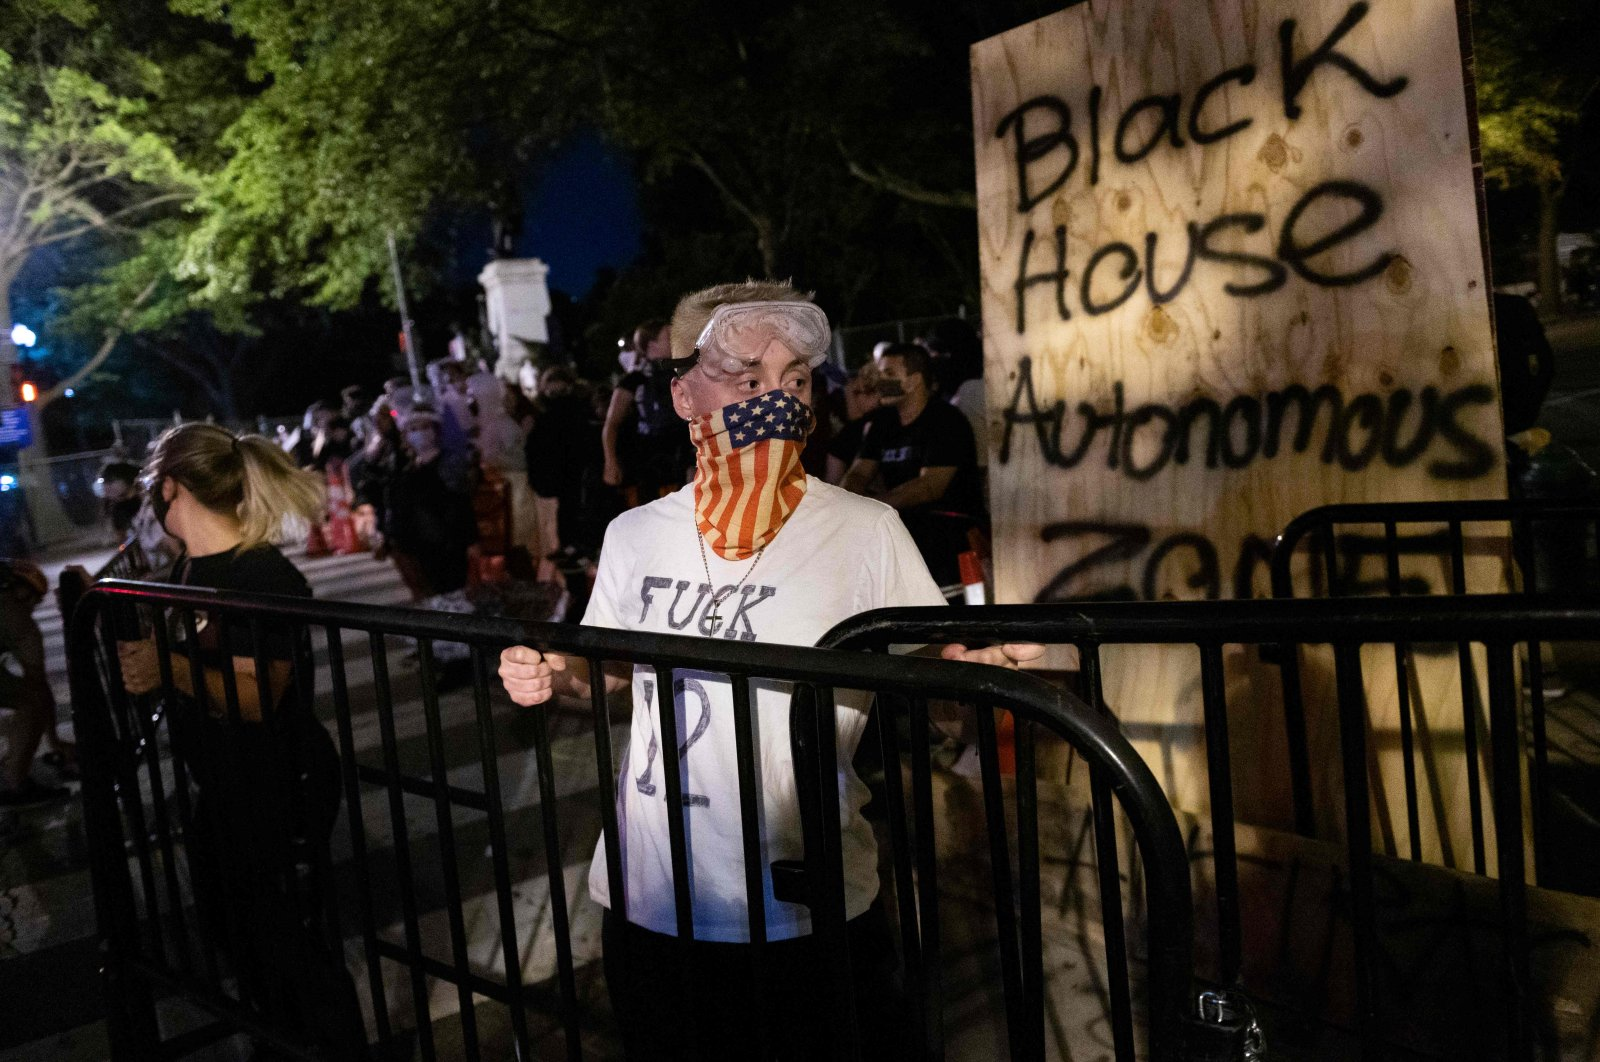 """Protesters carry metal stanchions as they fortify a barricade they erected and marked with the sign """"Black House Autonomous Zone"""" in front of Lafayette Park near the White House, in Washington, D.C., U.S., June 22, 2020. (AFP Photo)"""